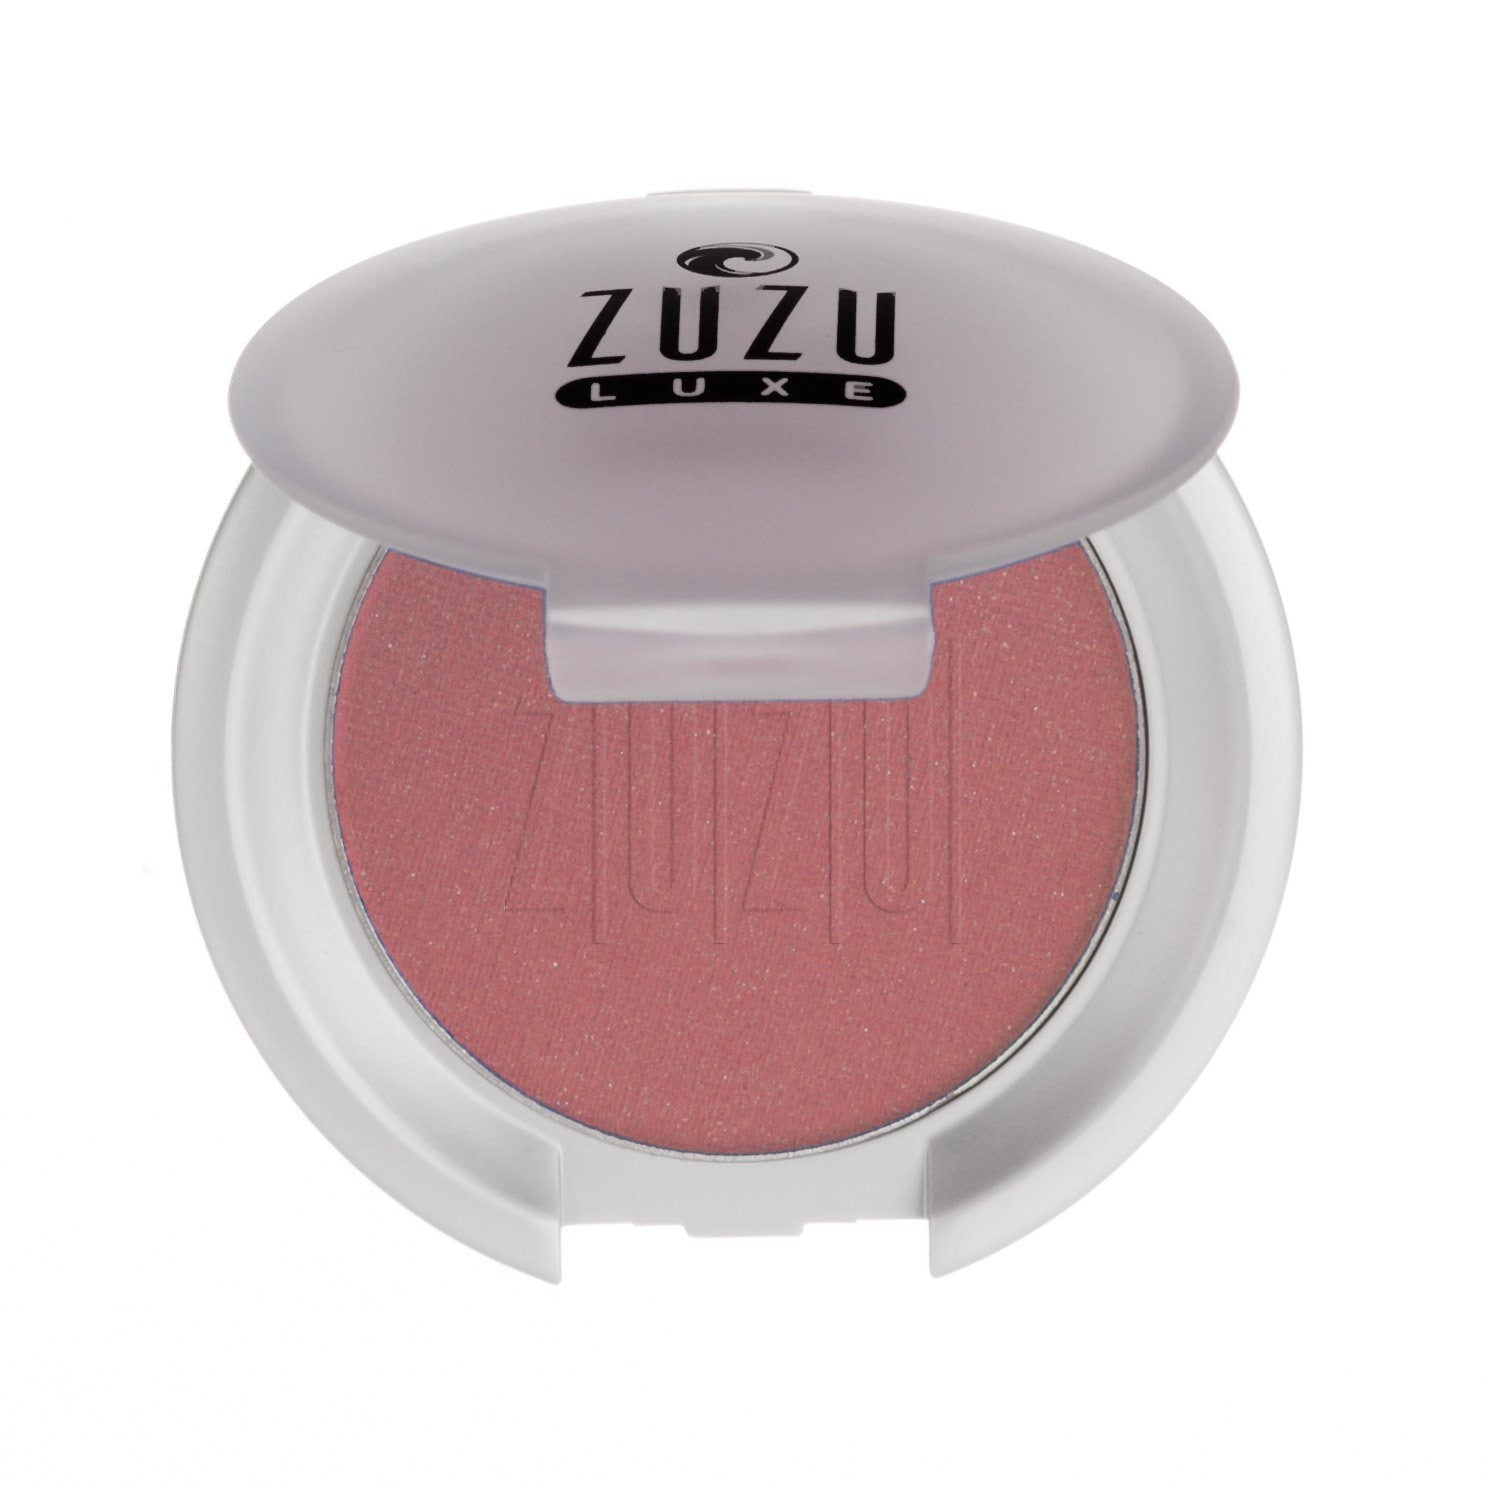 Beauty & Skin Care,Food & Drink - Zuzu Luxe - Gluten Free Blush, Haze